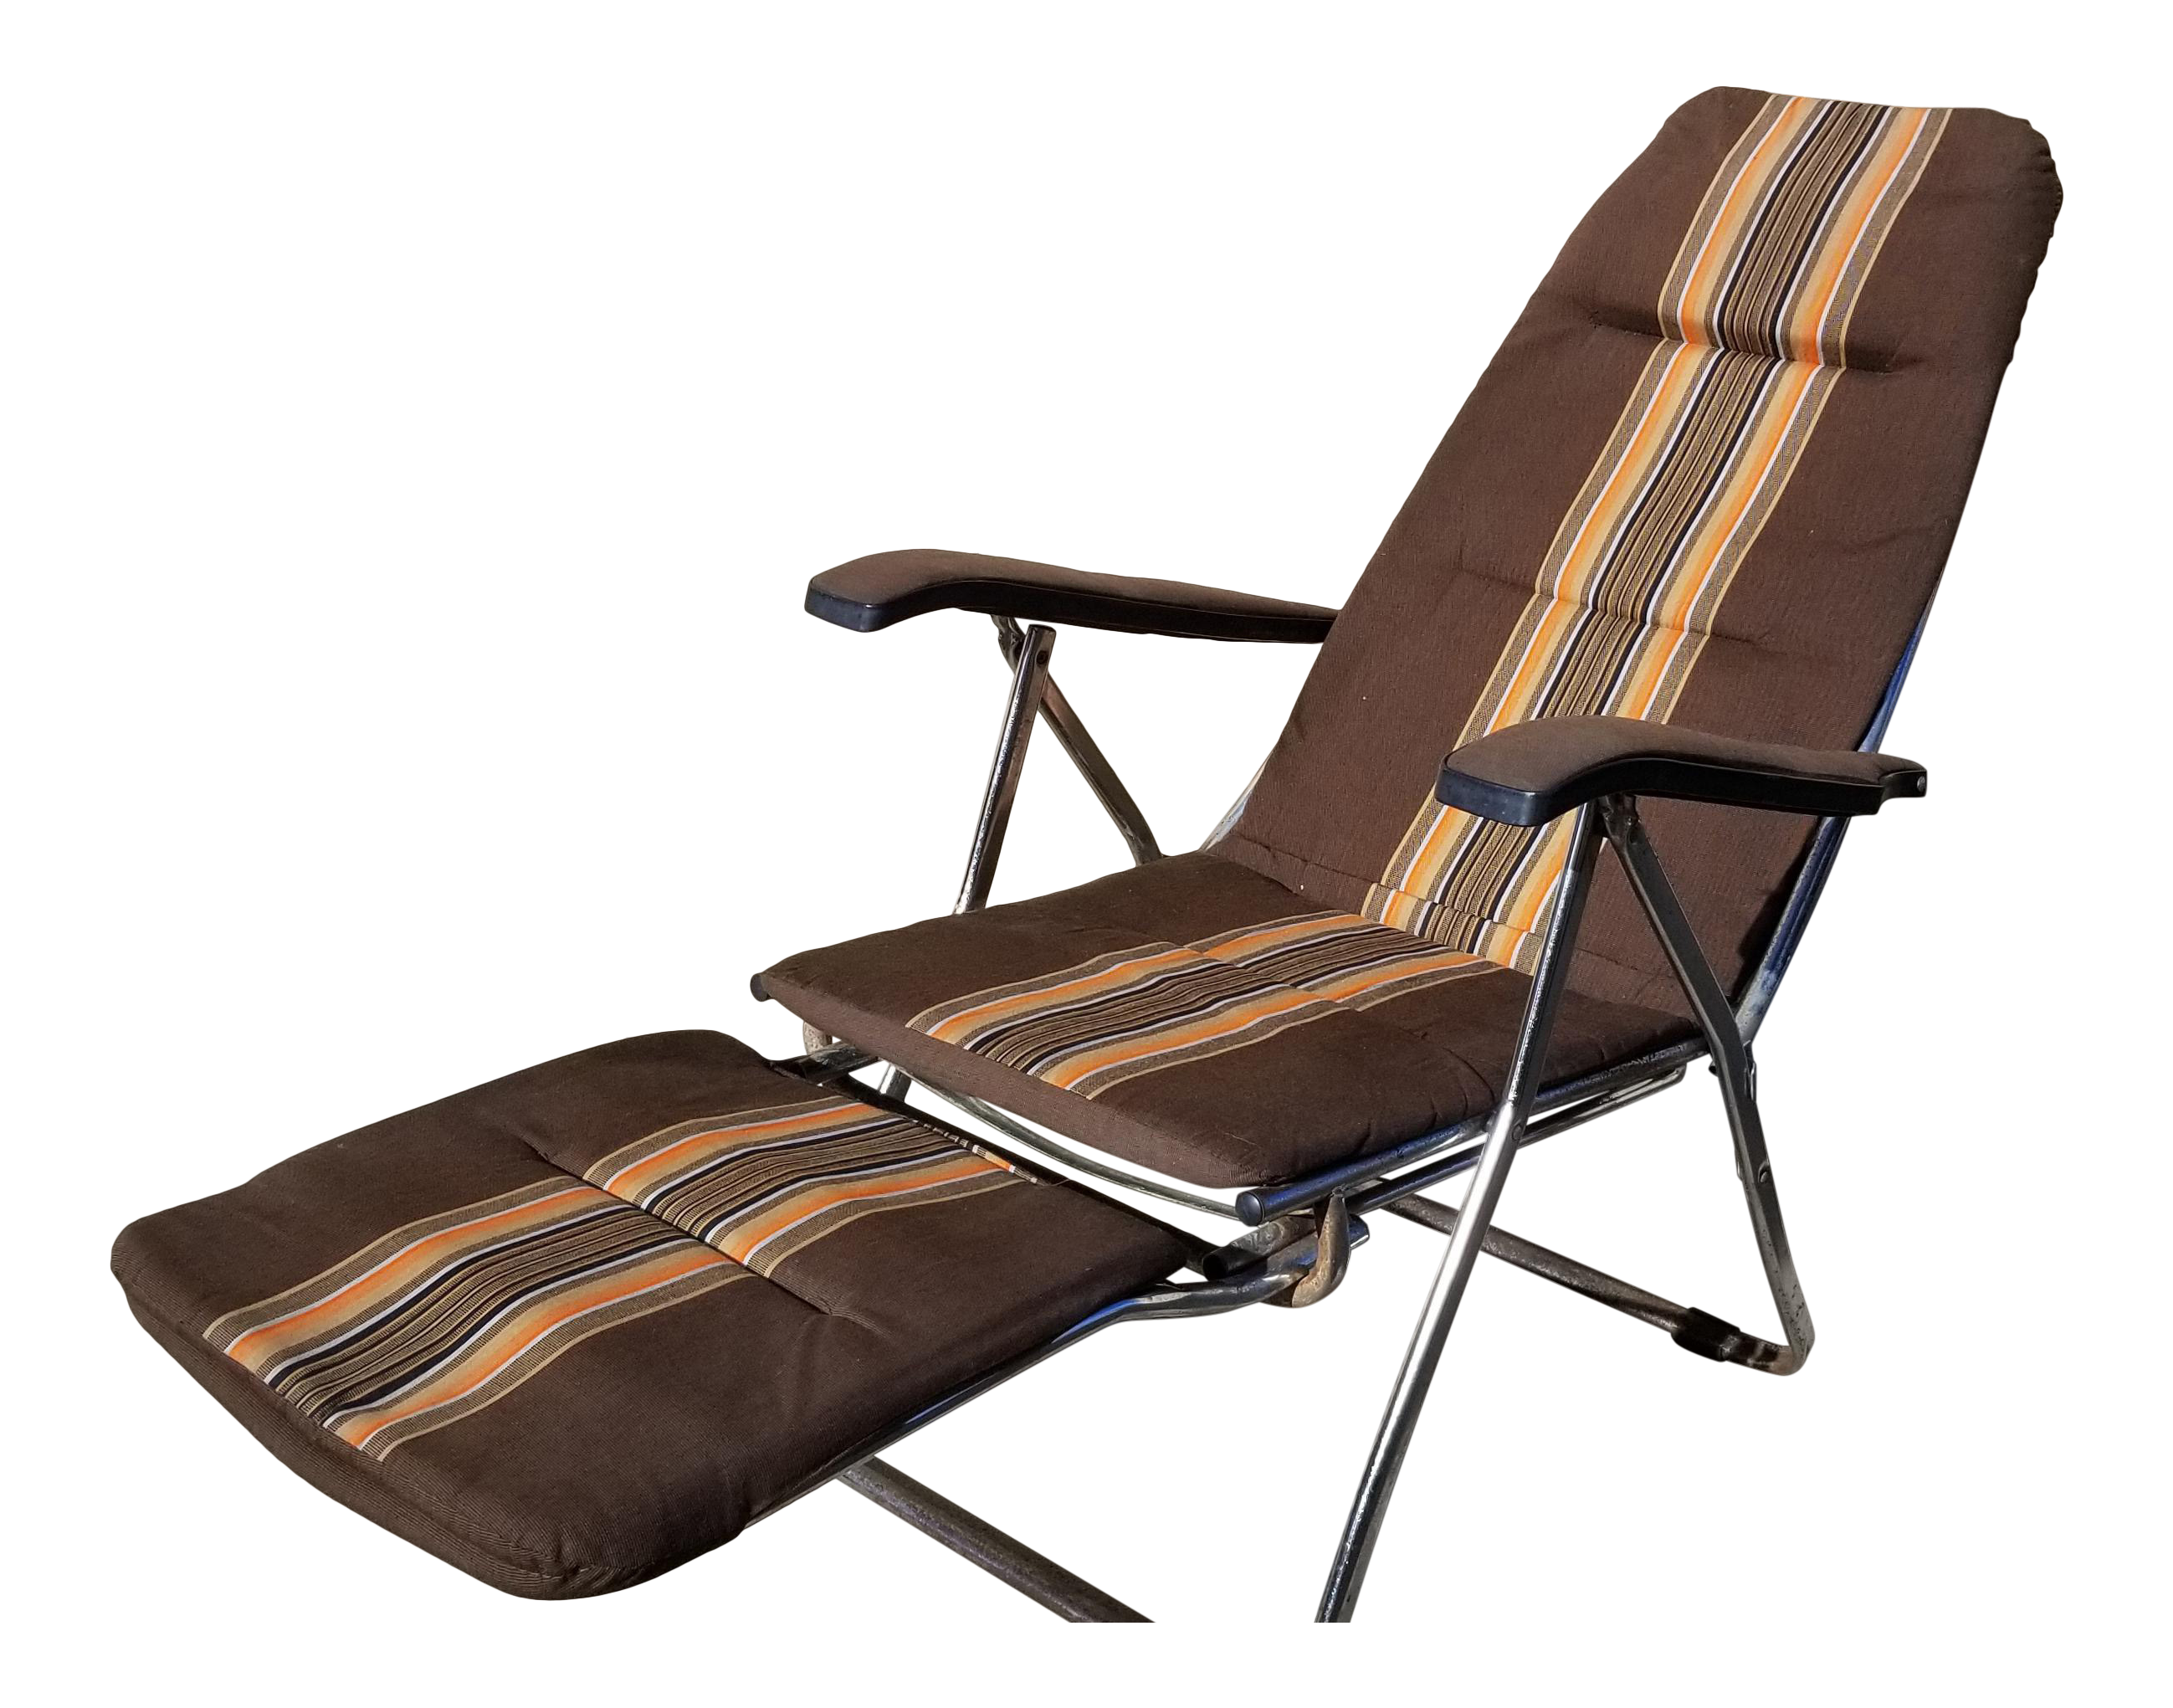 Remarkable Vintage Mid Century Maule Marga Reclining Airstream Camper Chair Foot Rest Creativecarmelina Interior Chair Design Creativecarmelinacom